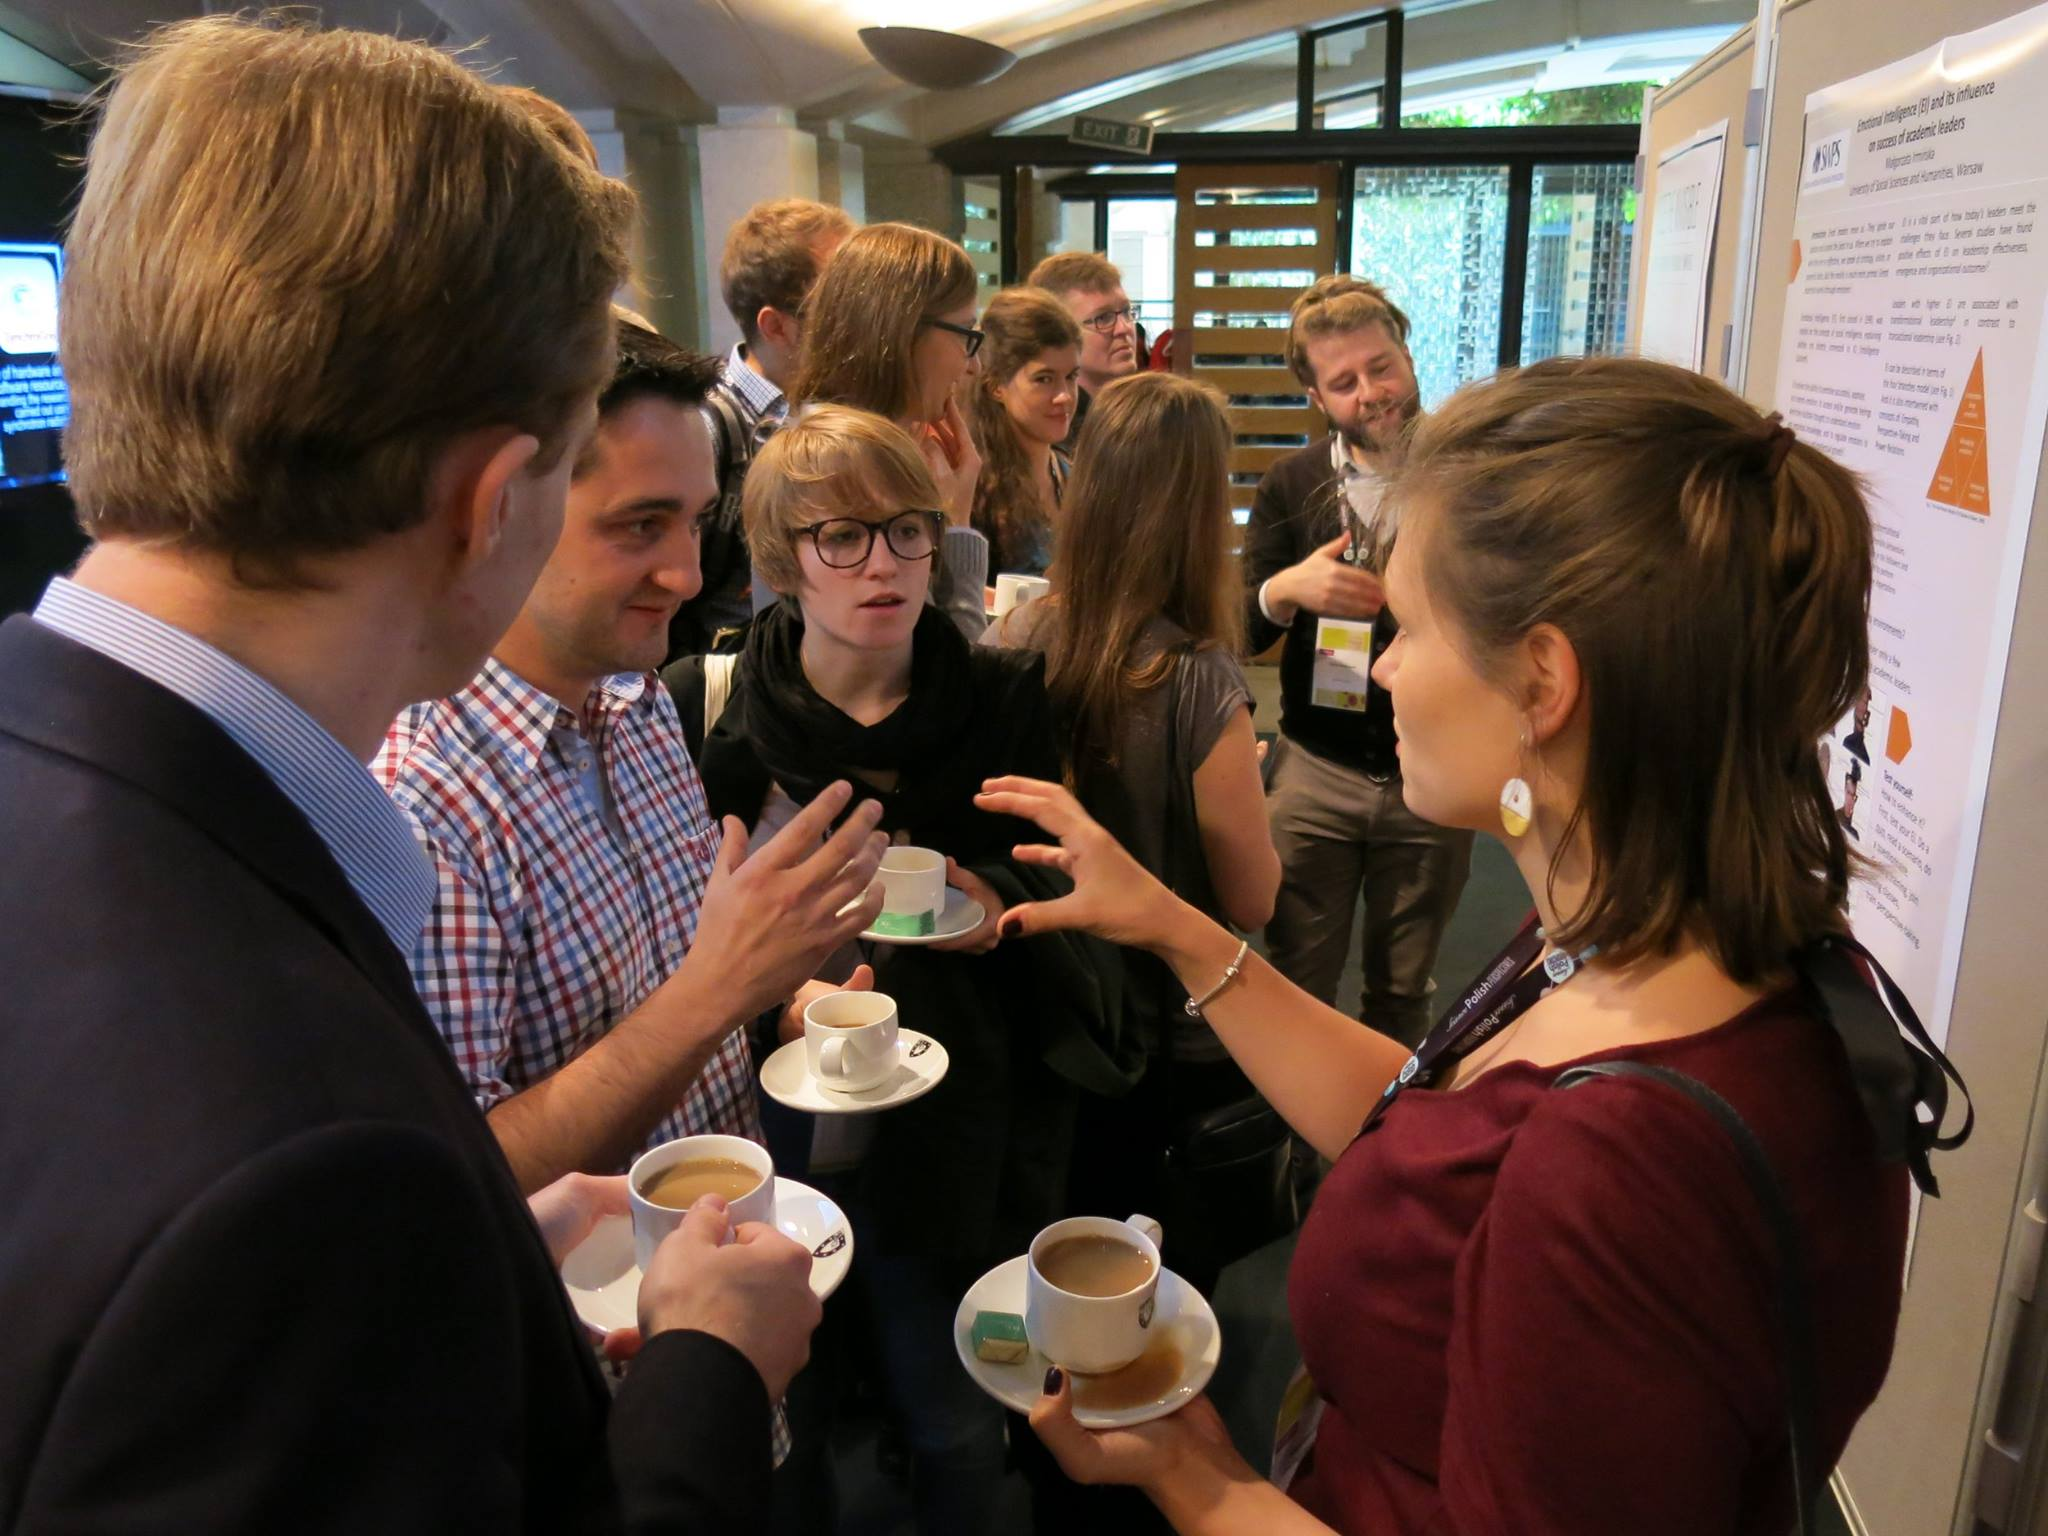 SPP 2014 - Oxford, UK | 24-15 Oct 2014